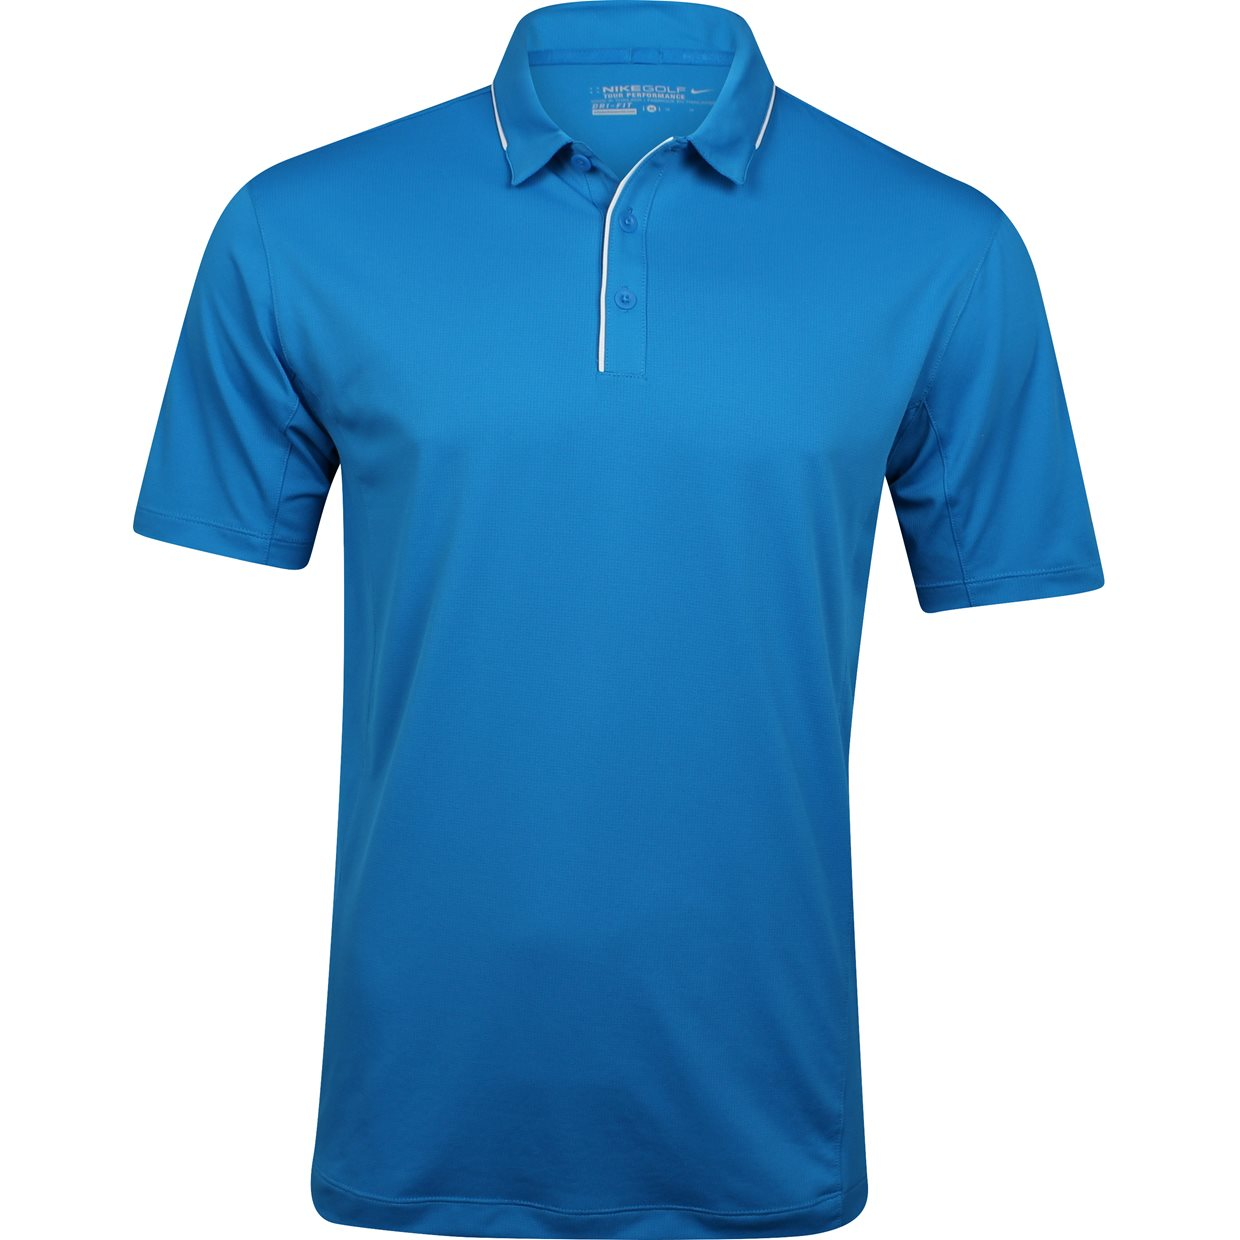 Nike Dri-Fit Nike Tech Tipped Polo Shirt Apparel at ...